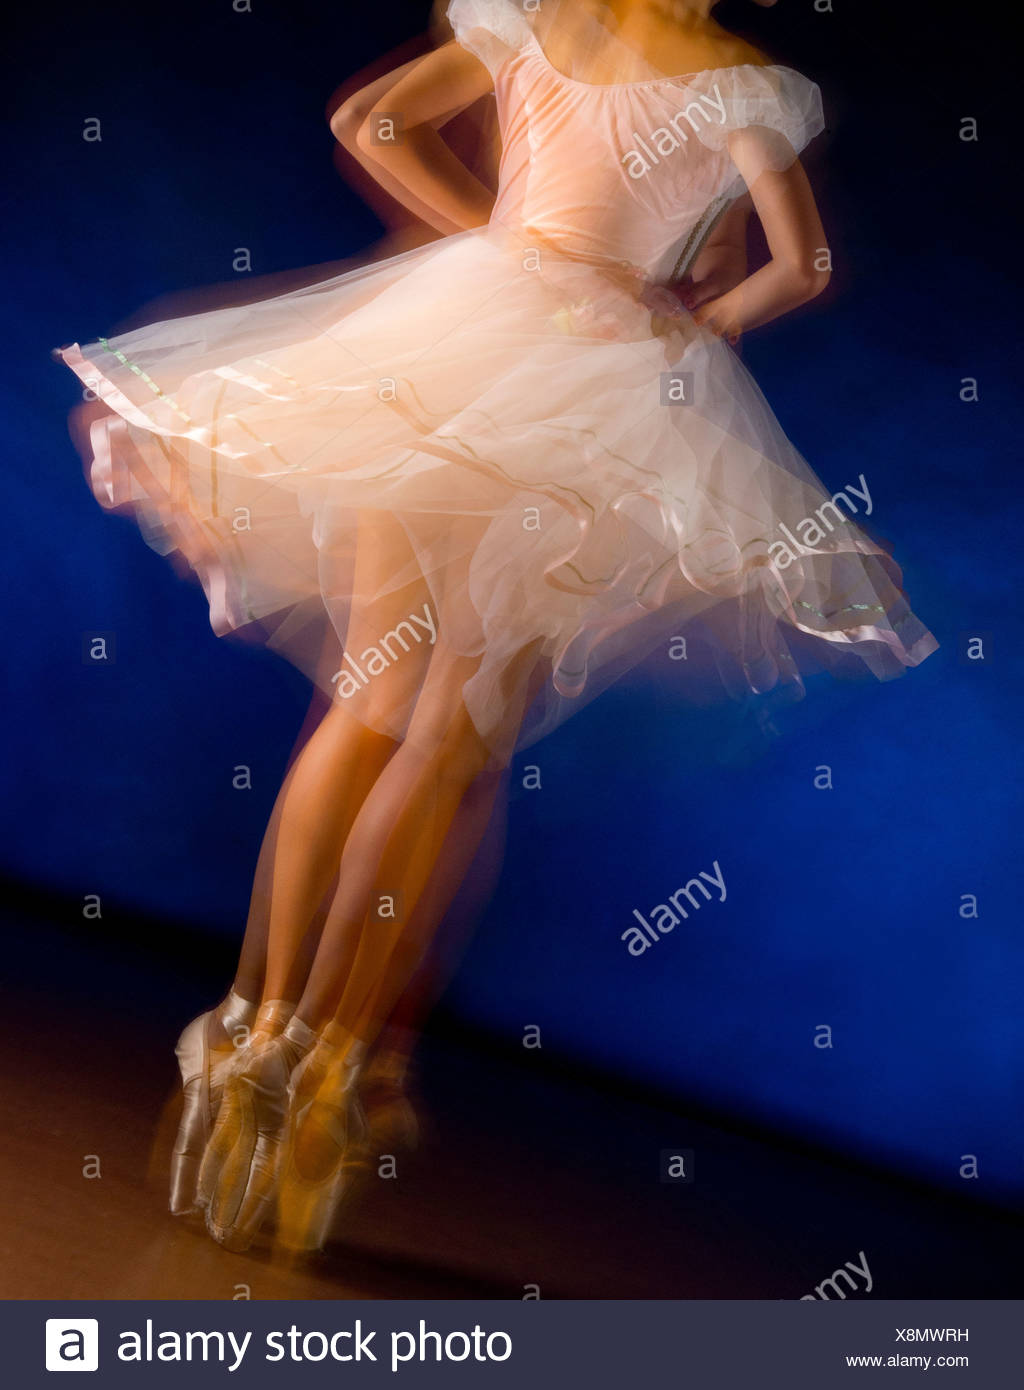 Ballerina in motion - Stock Image